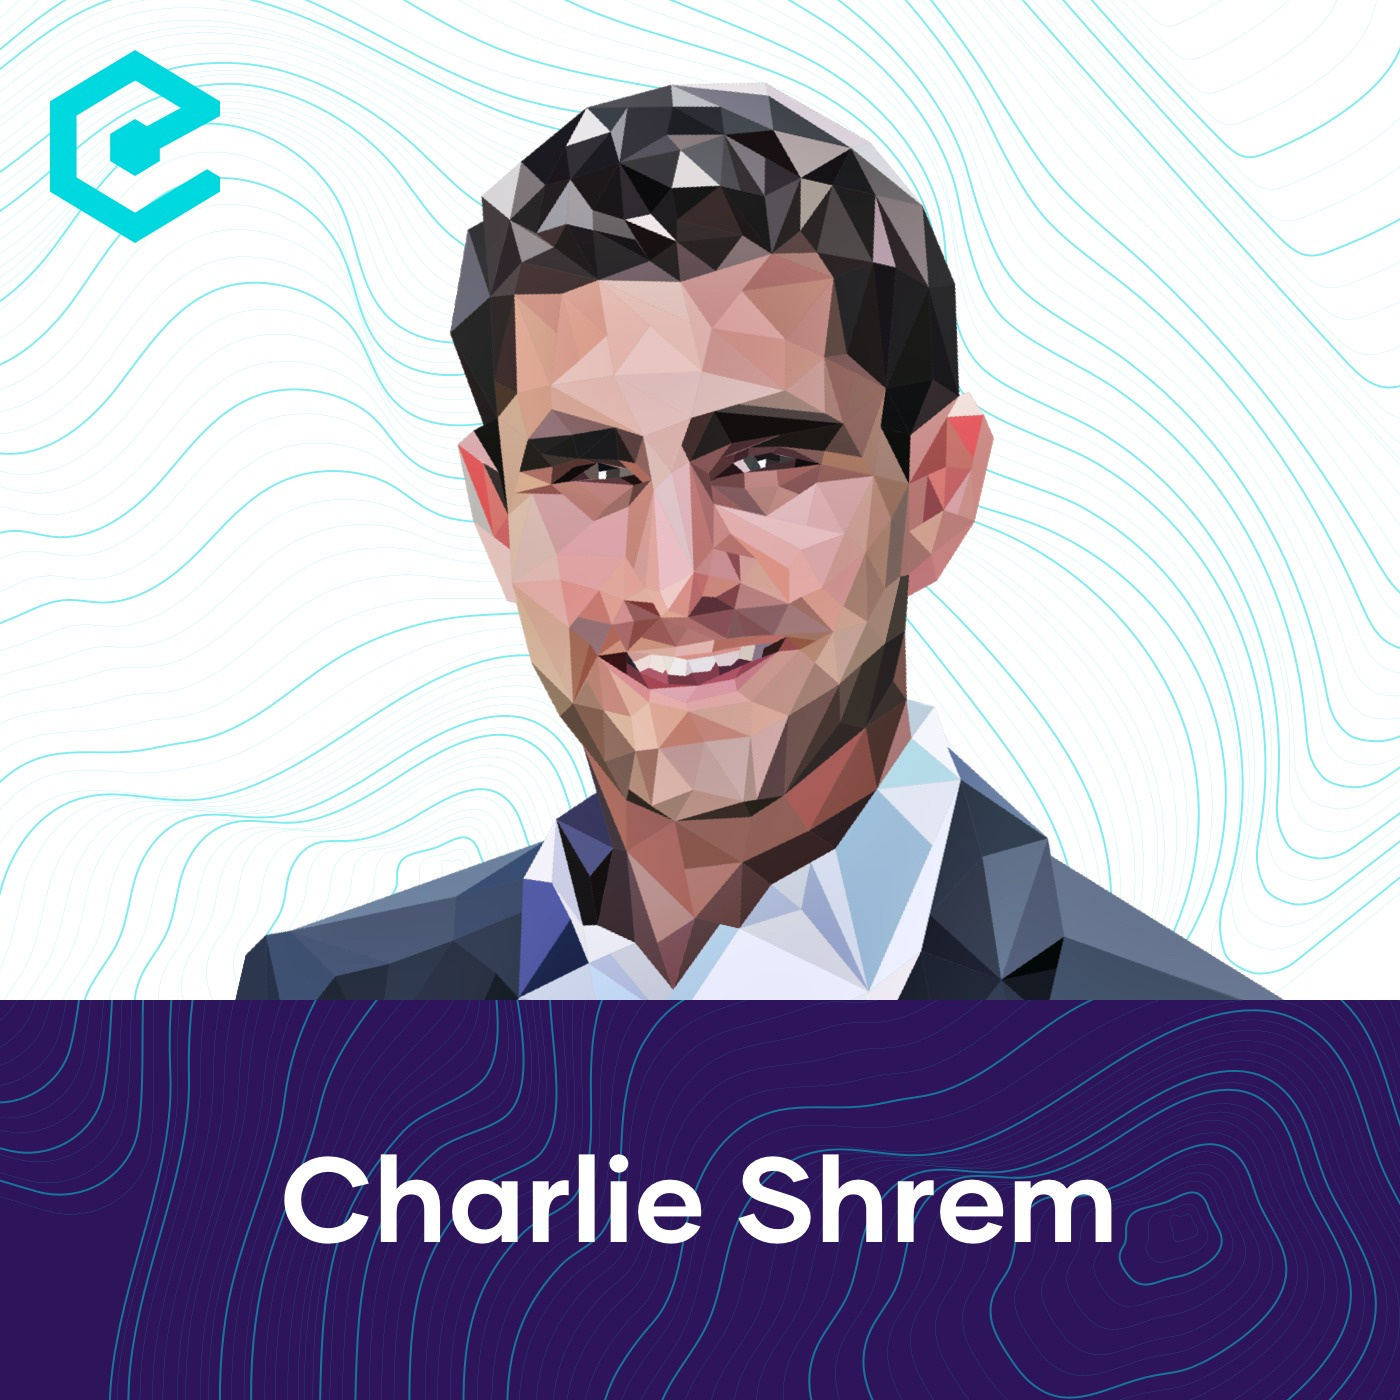 Charlie Shrem: The Untold Story of a Bitcoin Pioneer and Renegade